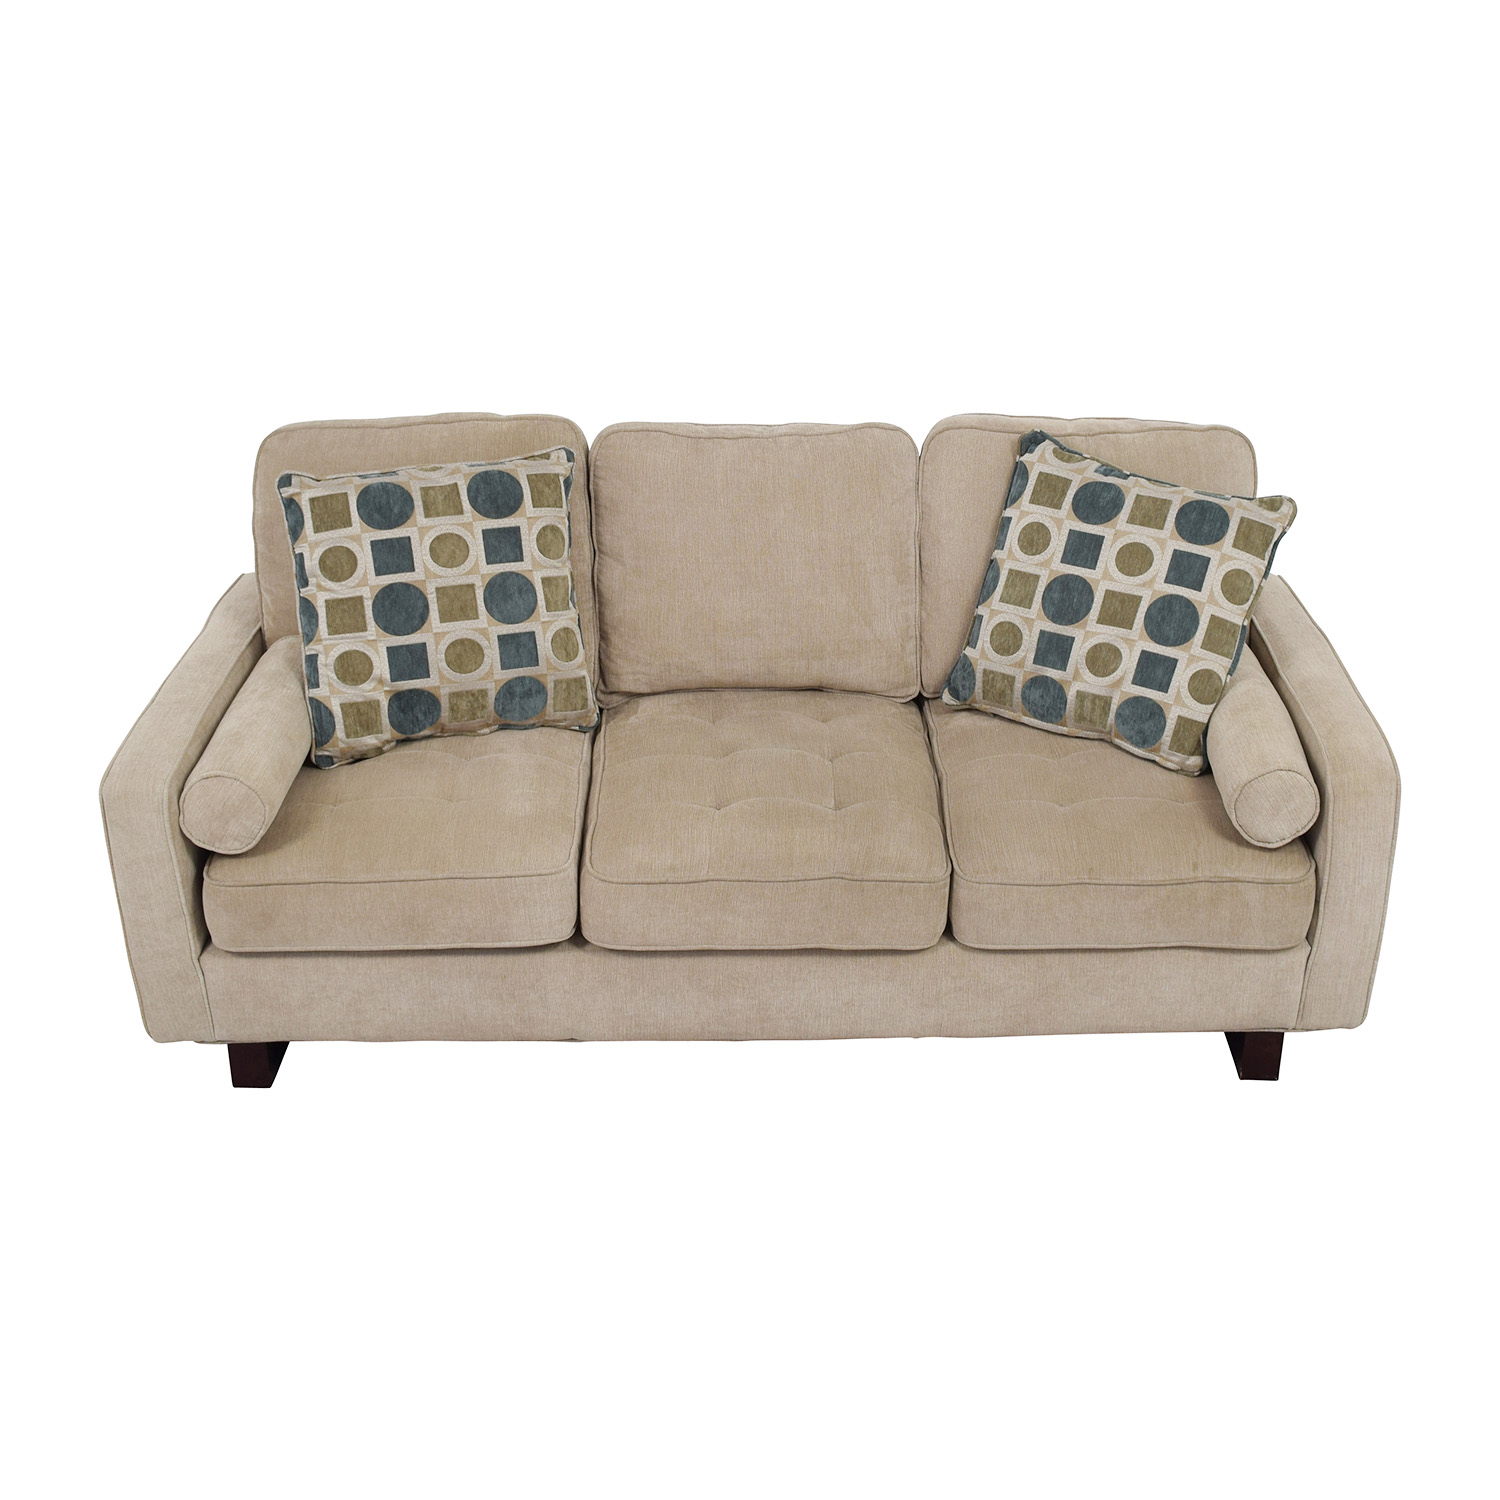 cheap three seater sofa bed 3 53 off bob 39s discount furniture